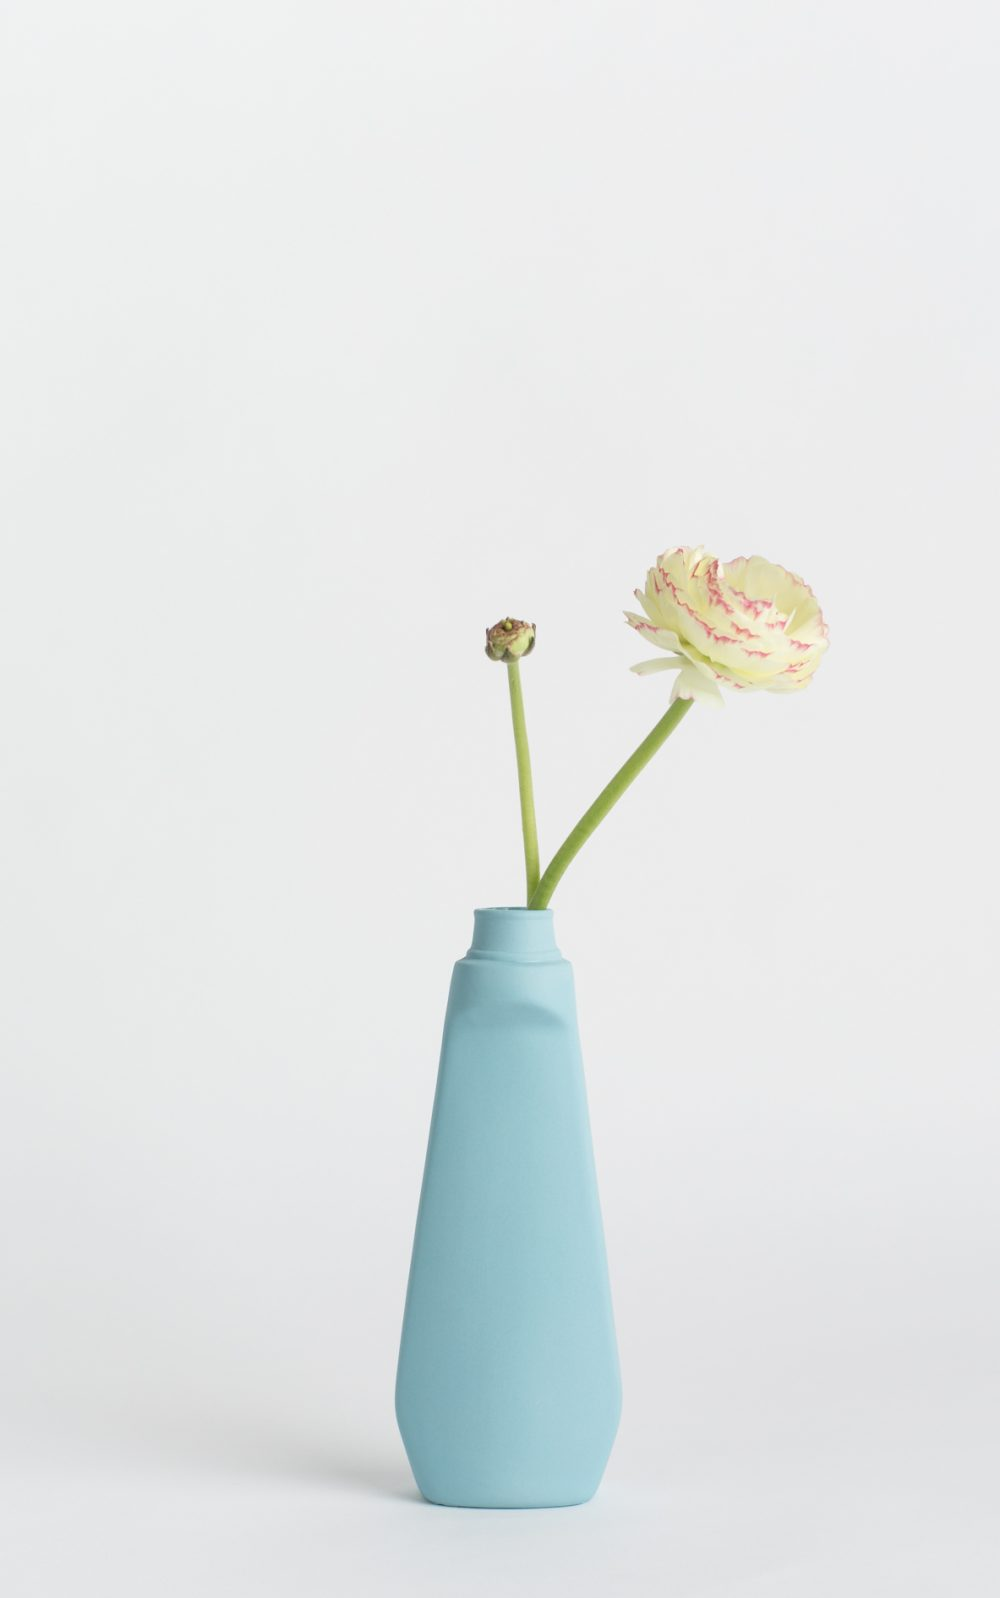 bottle vase #4 light blue with flower